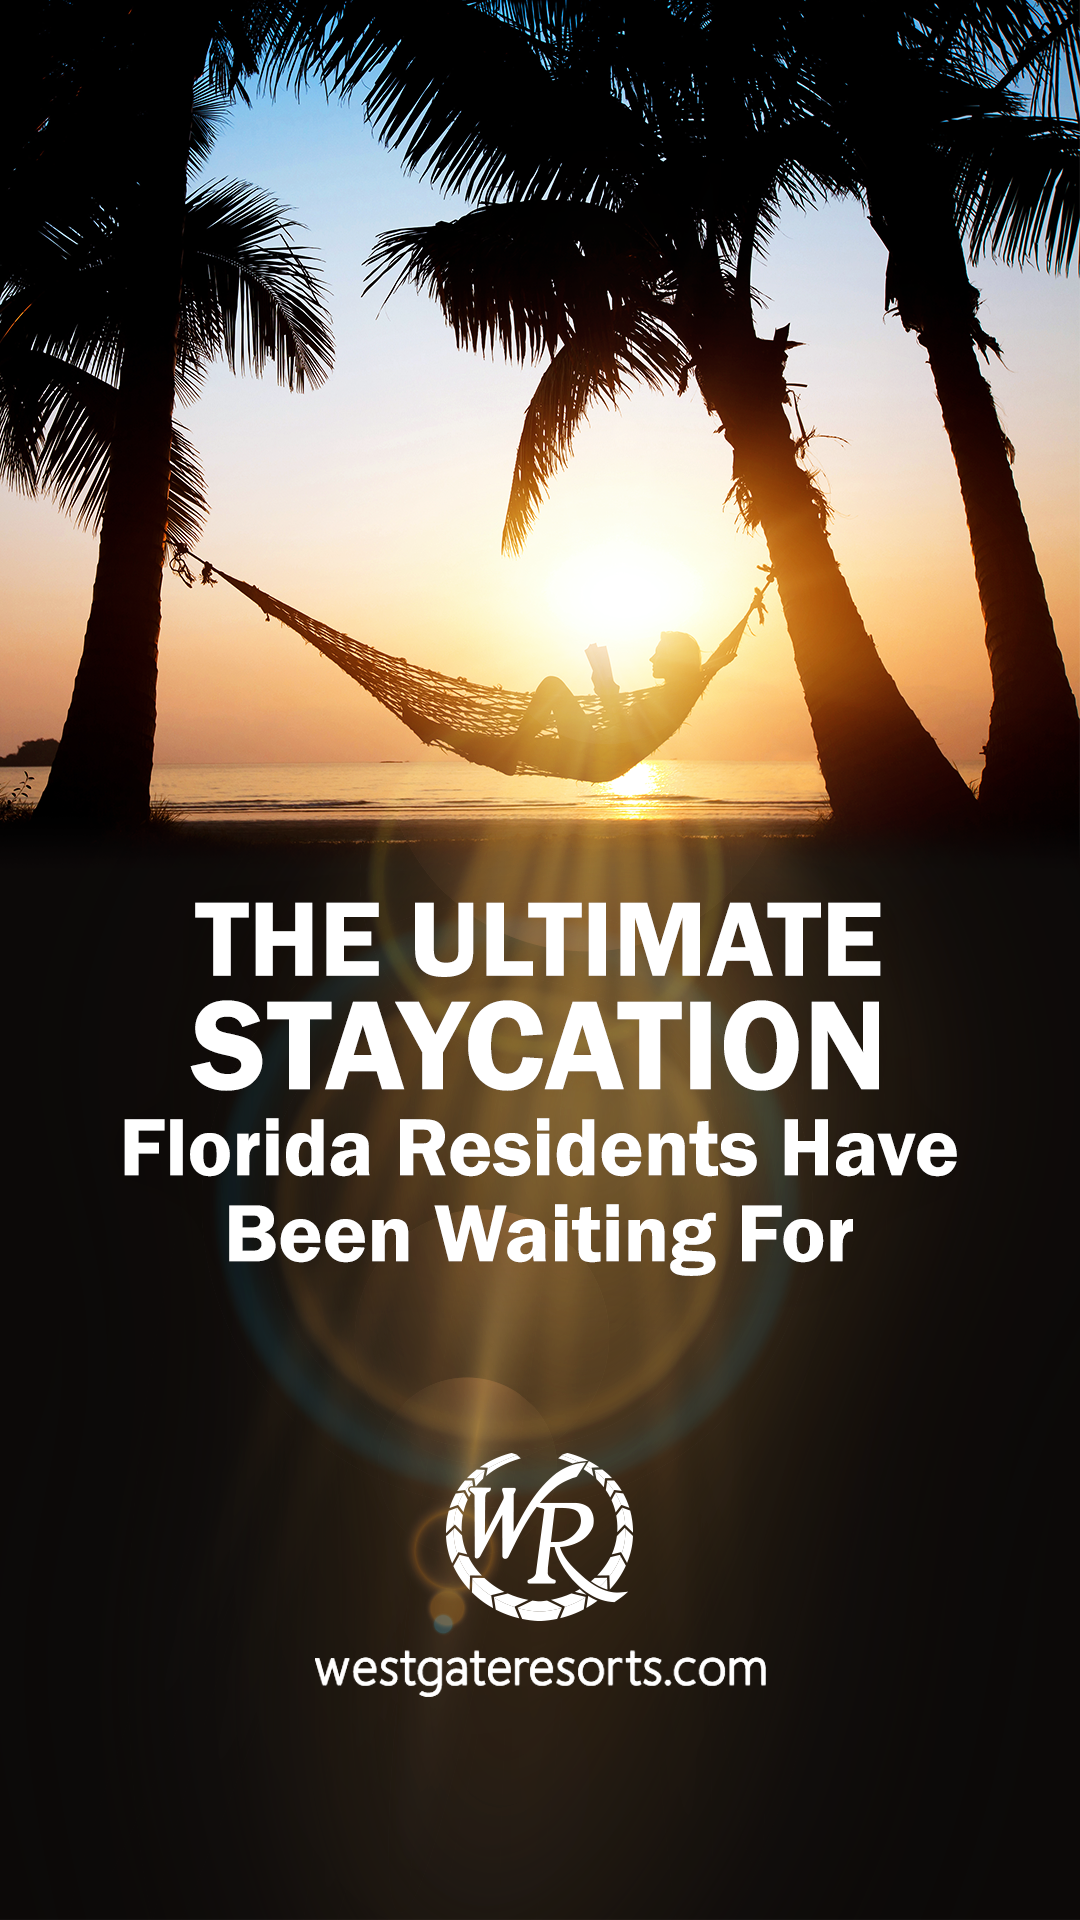 the ultimate staycation florida residents have been waiting for